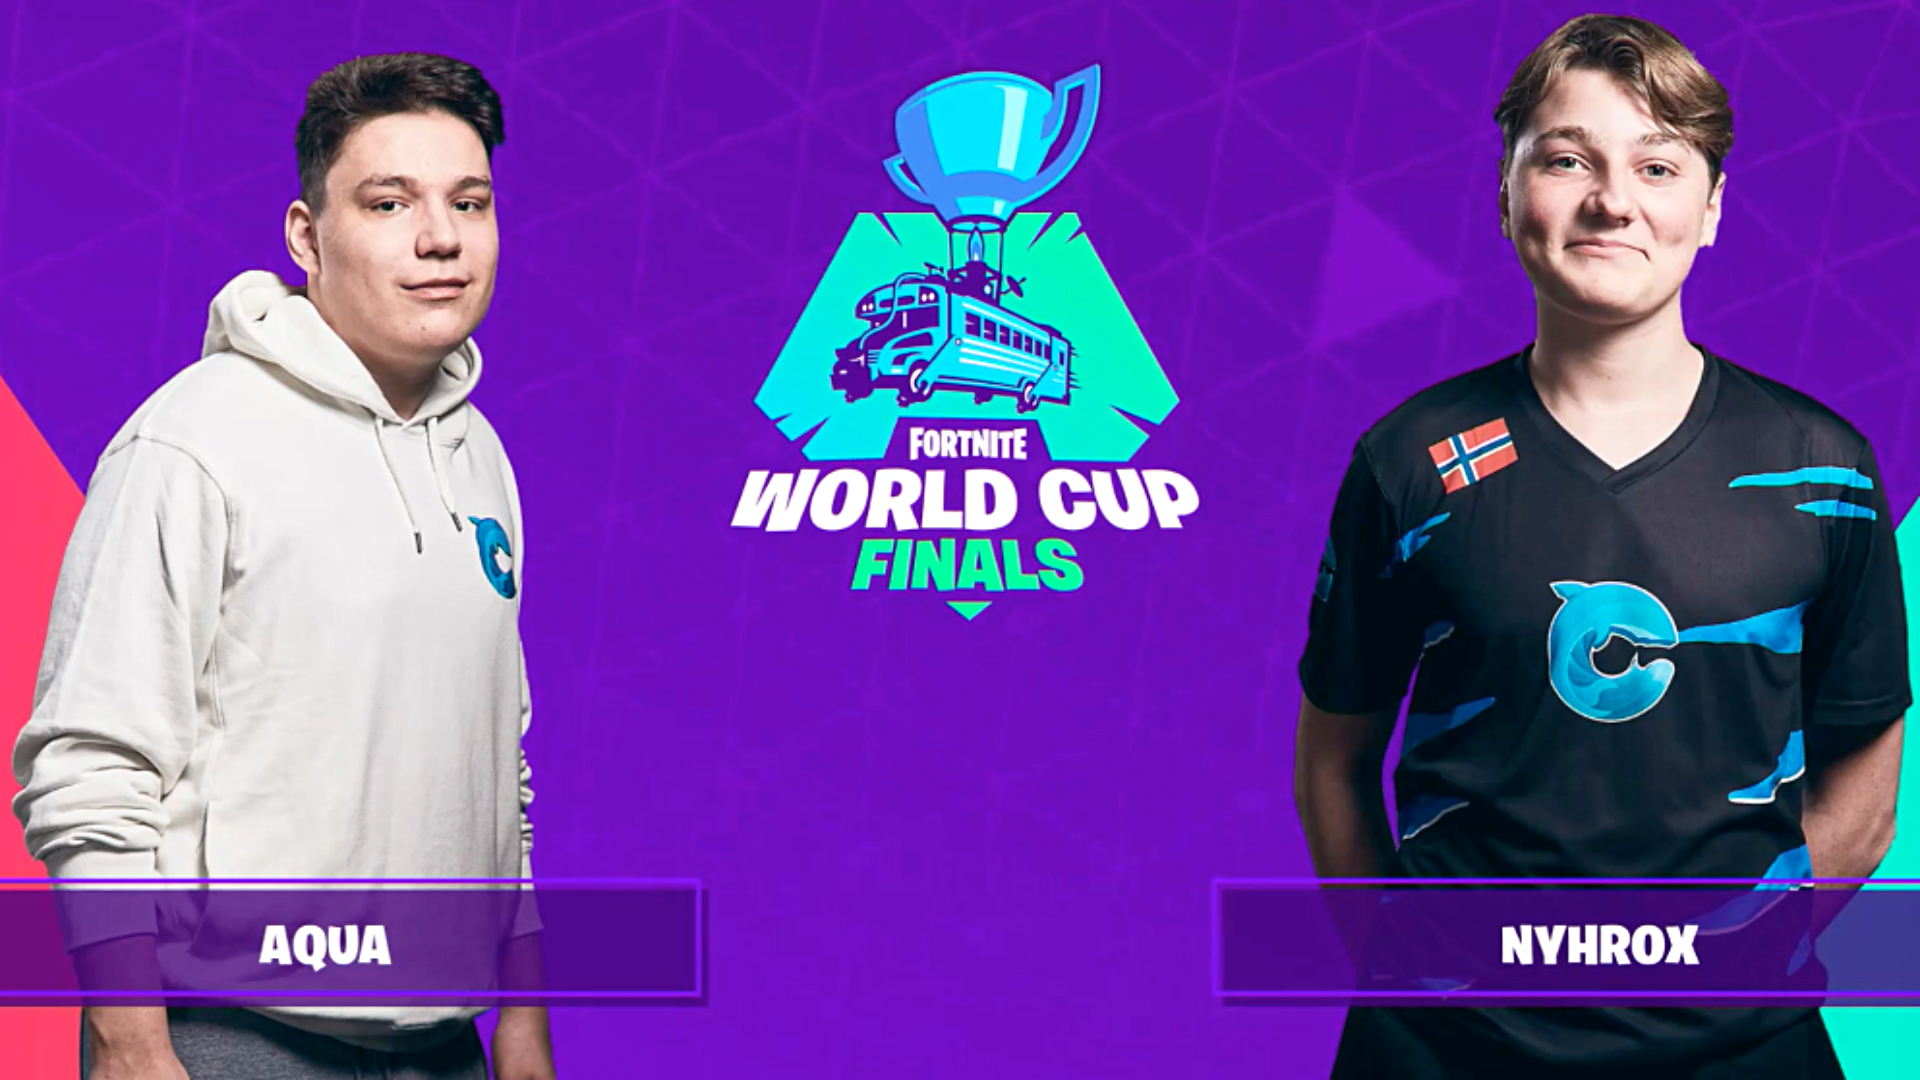 Fortnite World Cup, fortnite